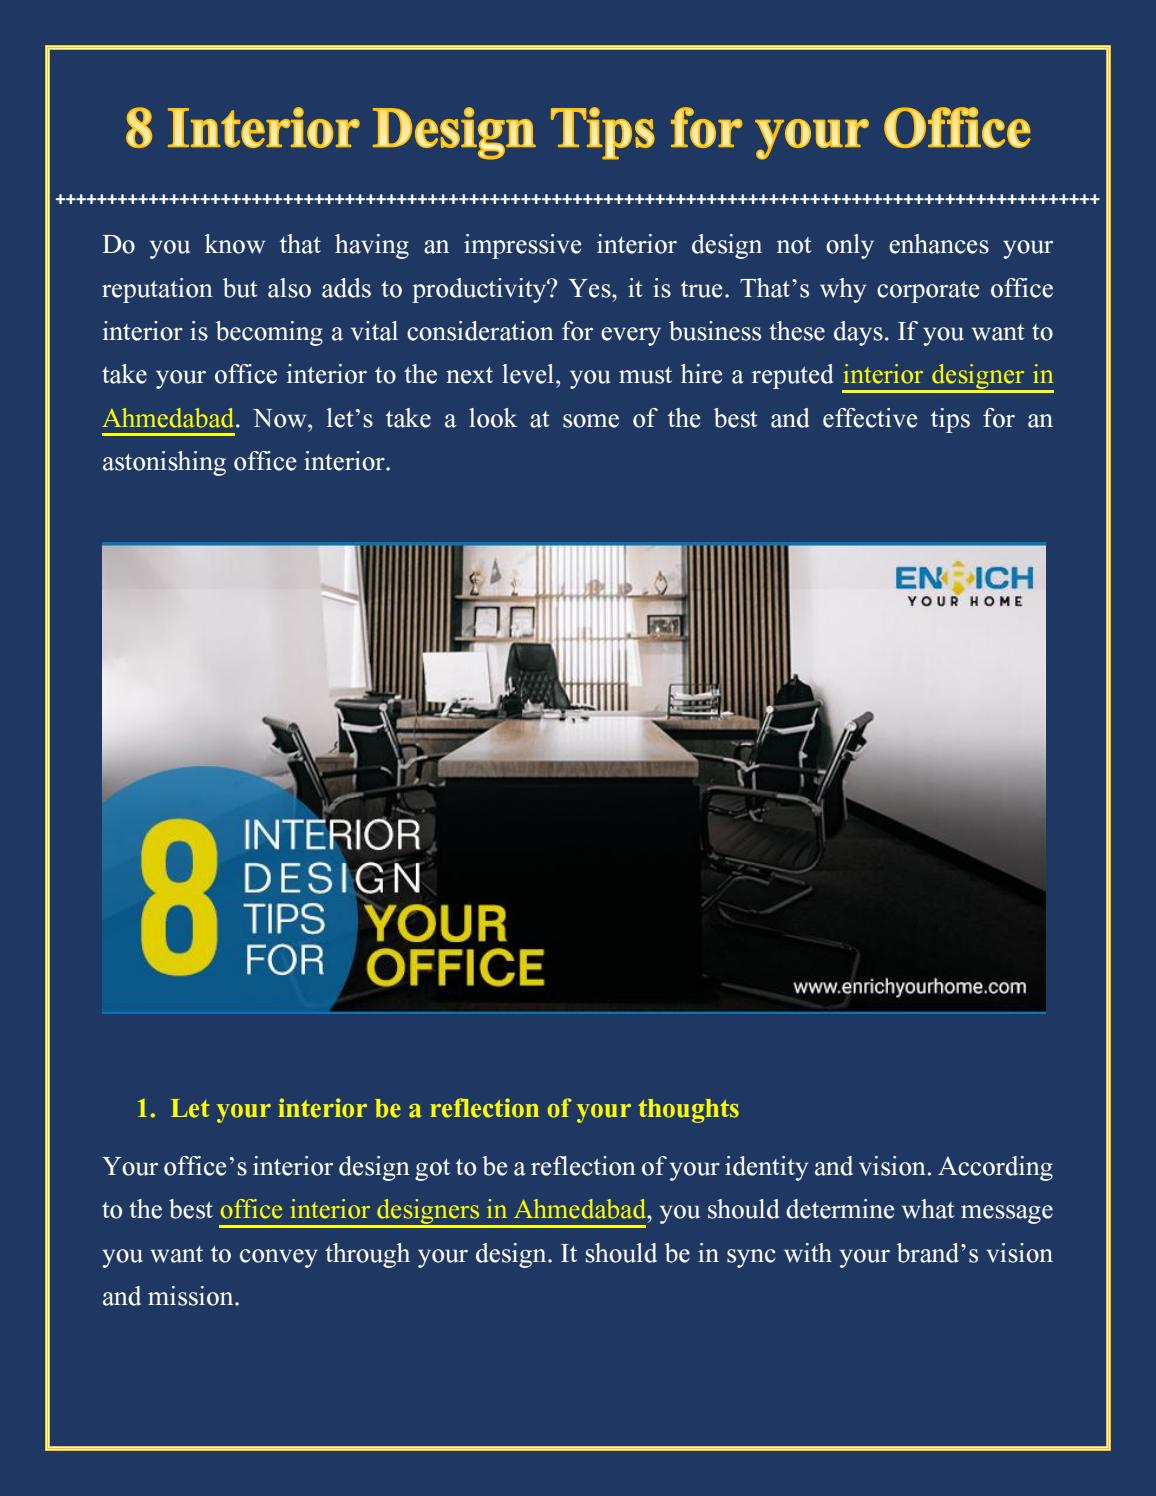 8 Interior Design Tips For Your Office By Enrichyourhome Issuu